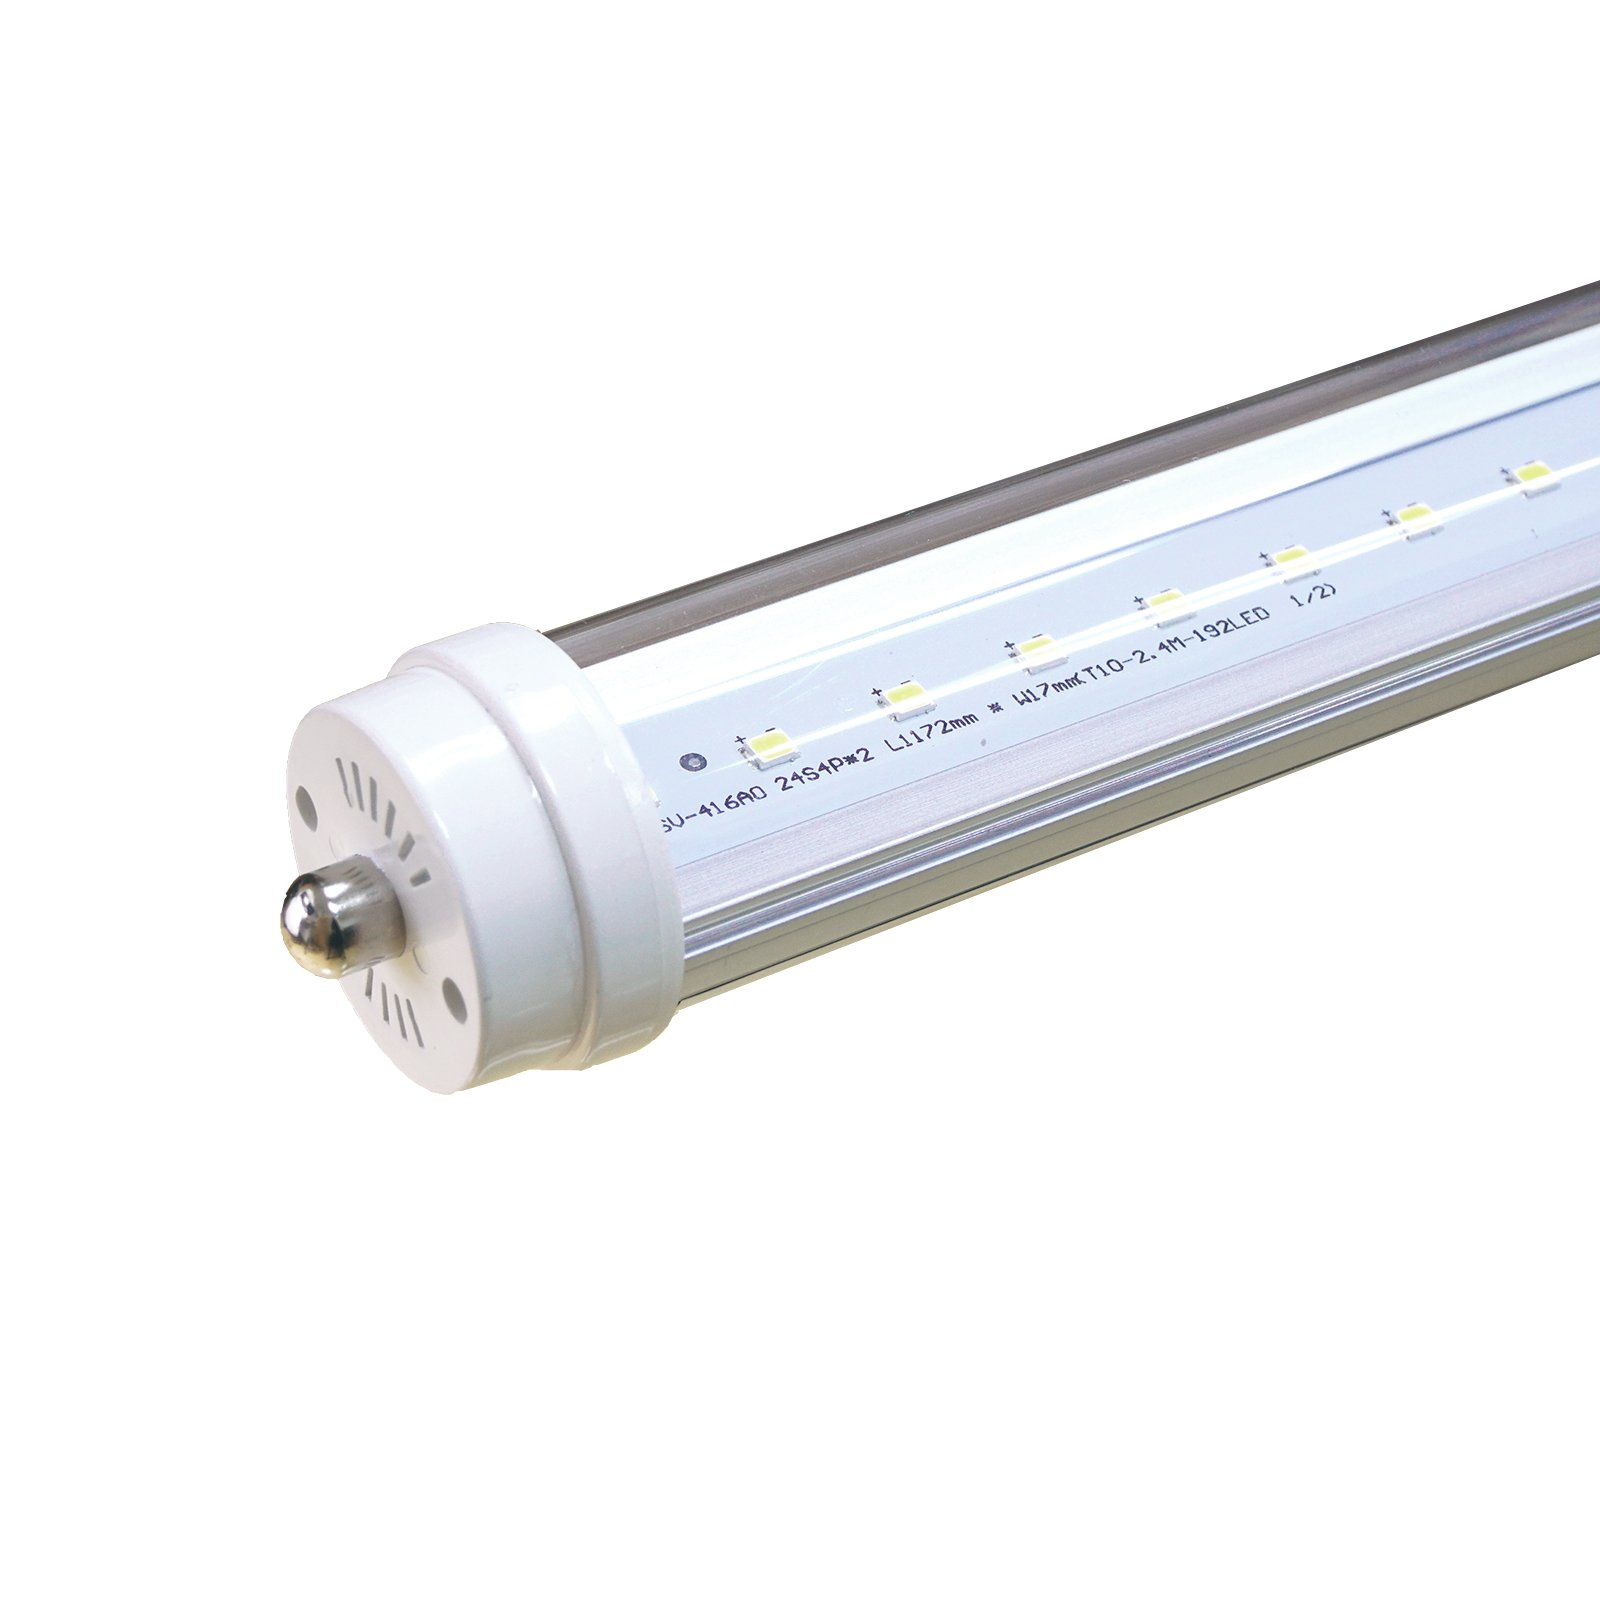 FiveStar Lights T12 8FT LED Light Tube 40W(90W equivalent), 5000K, 3600 Lumen Brightness, ETL Listed, Dual-ended Power, Energy Saving Fluorescent Tube Replacement (1, T12 8FT 40W)